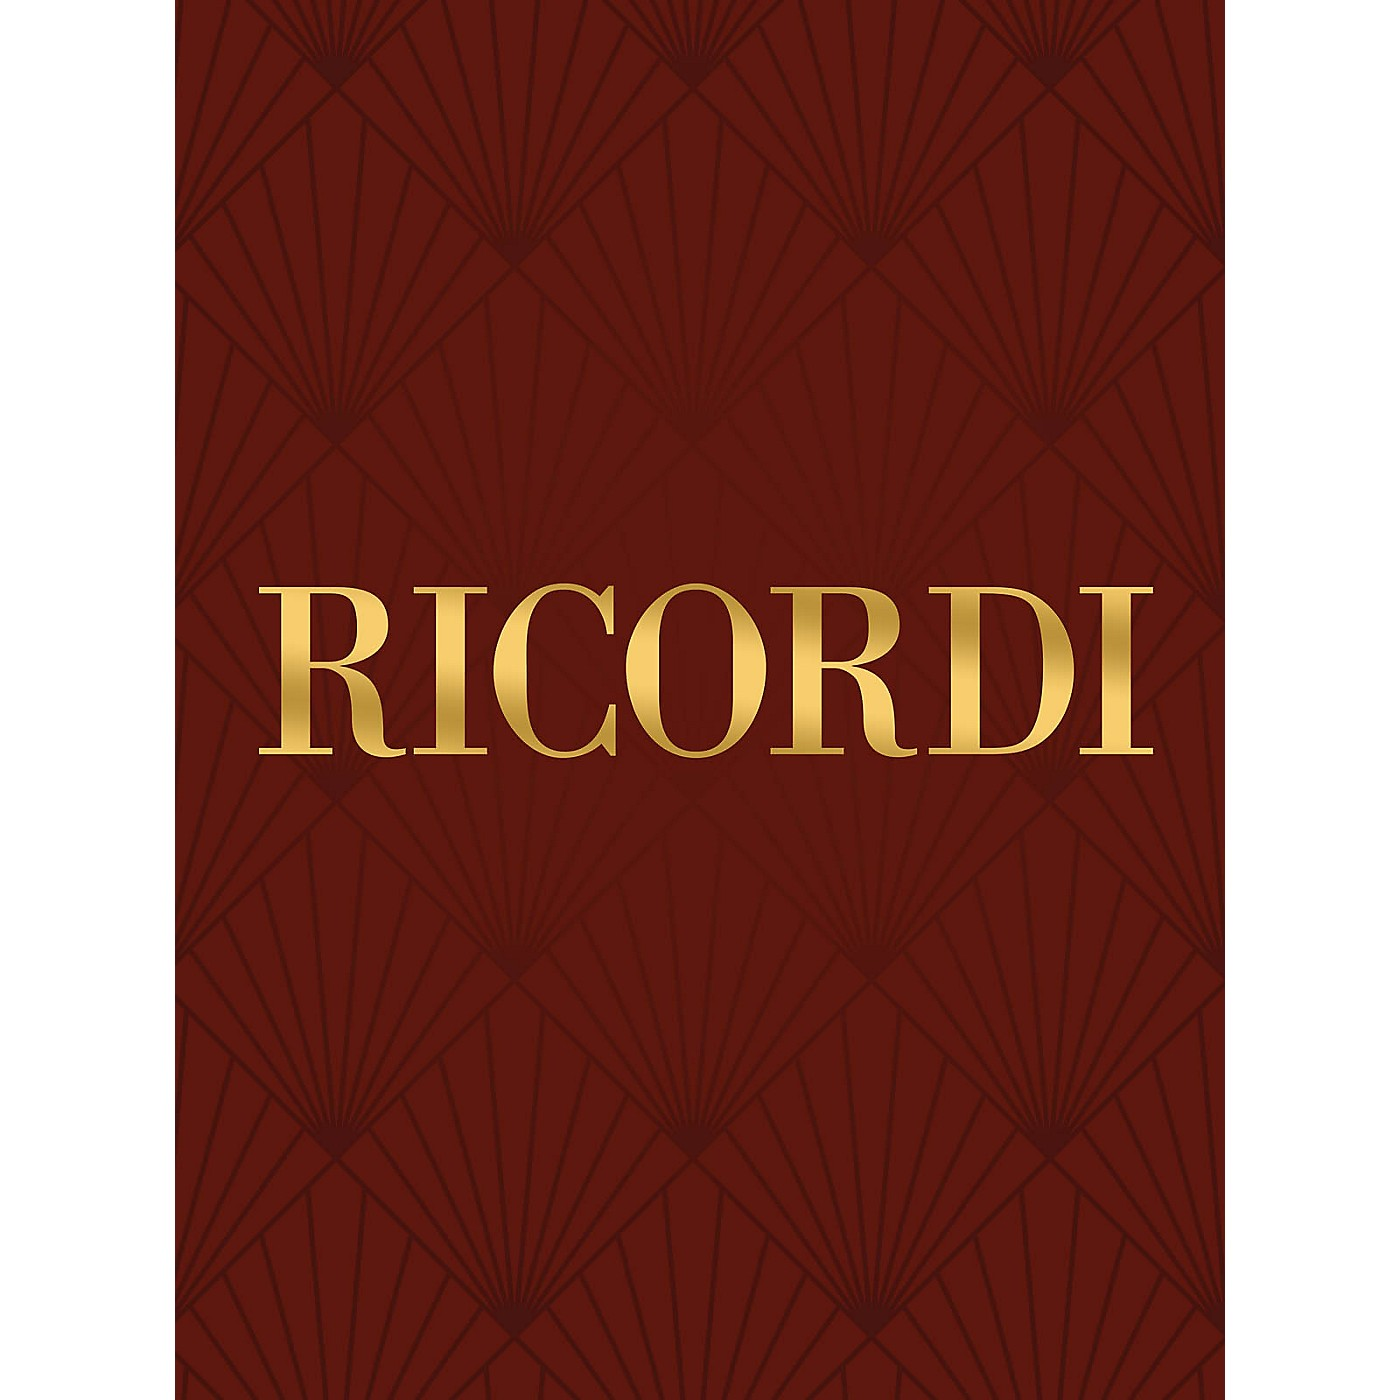 Ricordi Etudes, Op. 10 and 25 Complete Piano Large Works Composed by Frederic Chopin Edited by Pietro Montani thumbnail